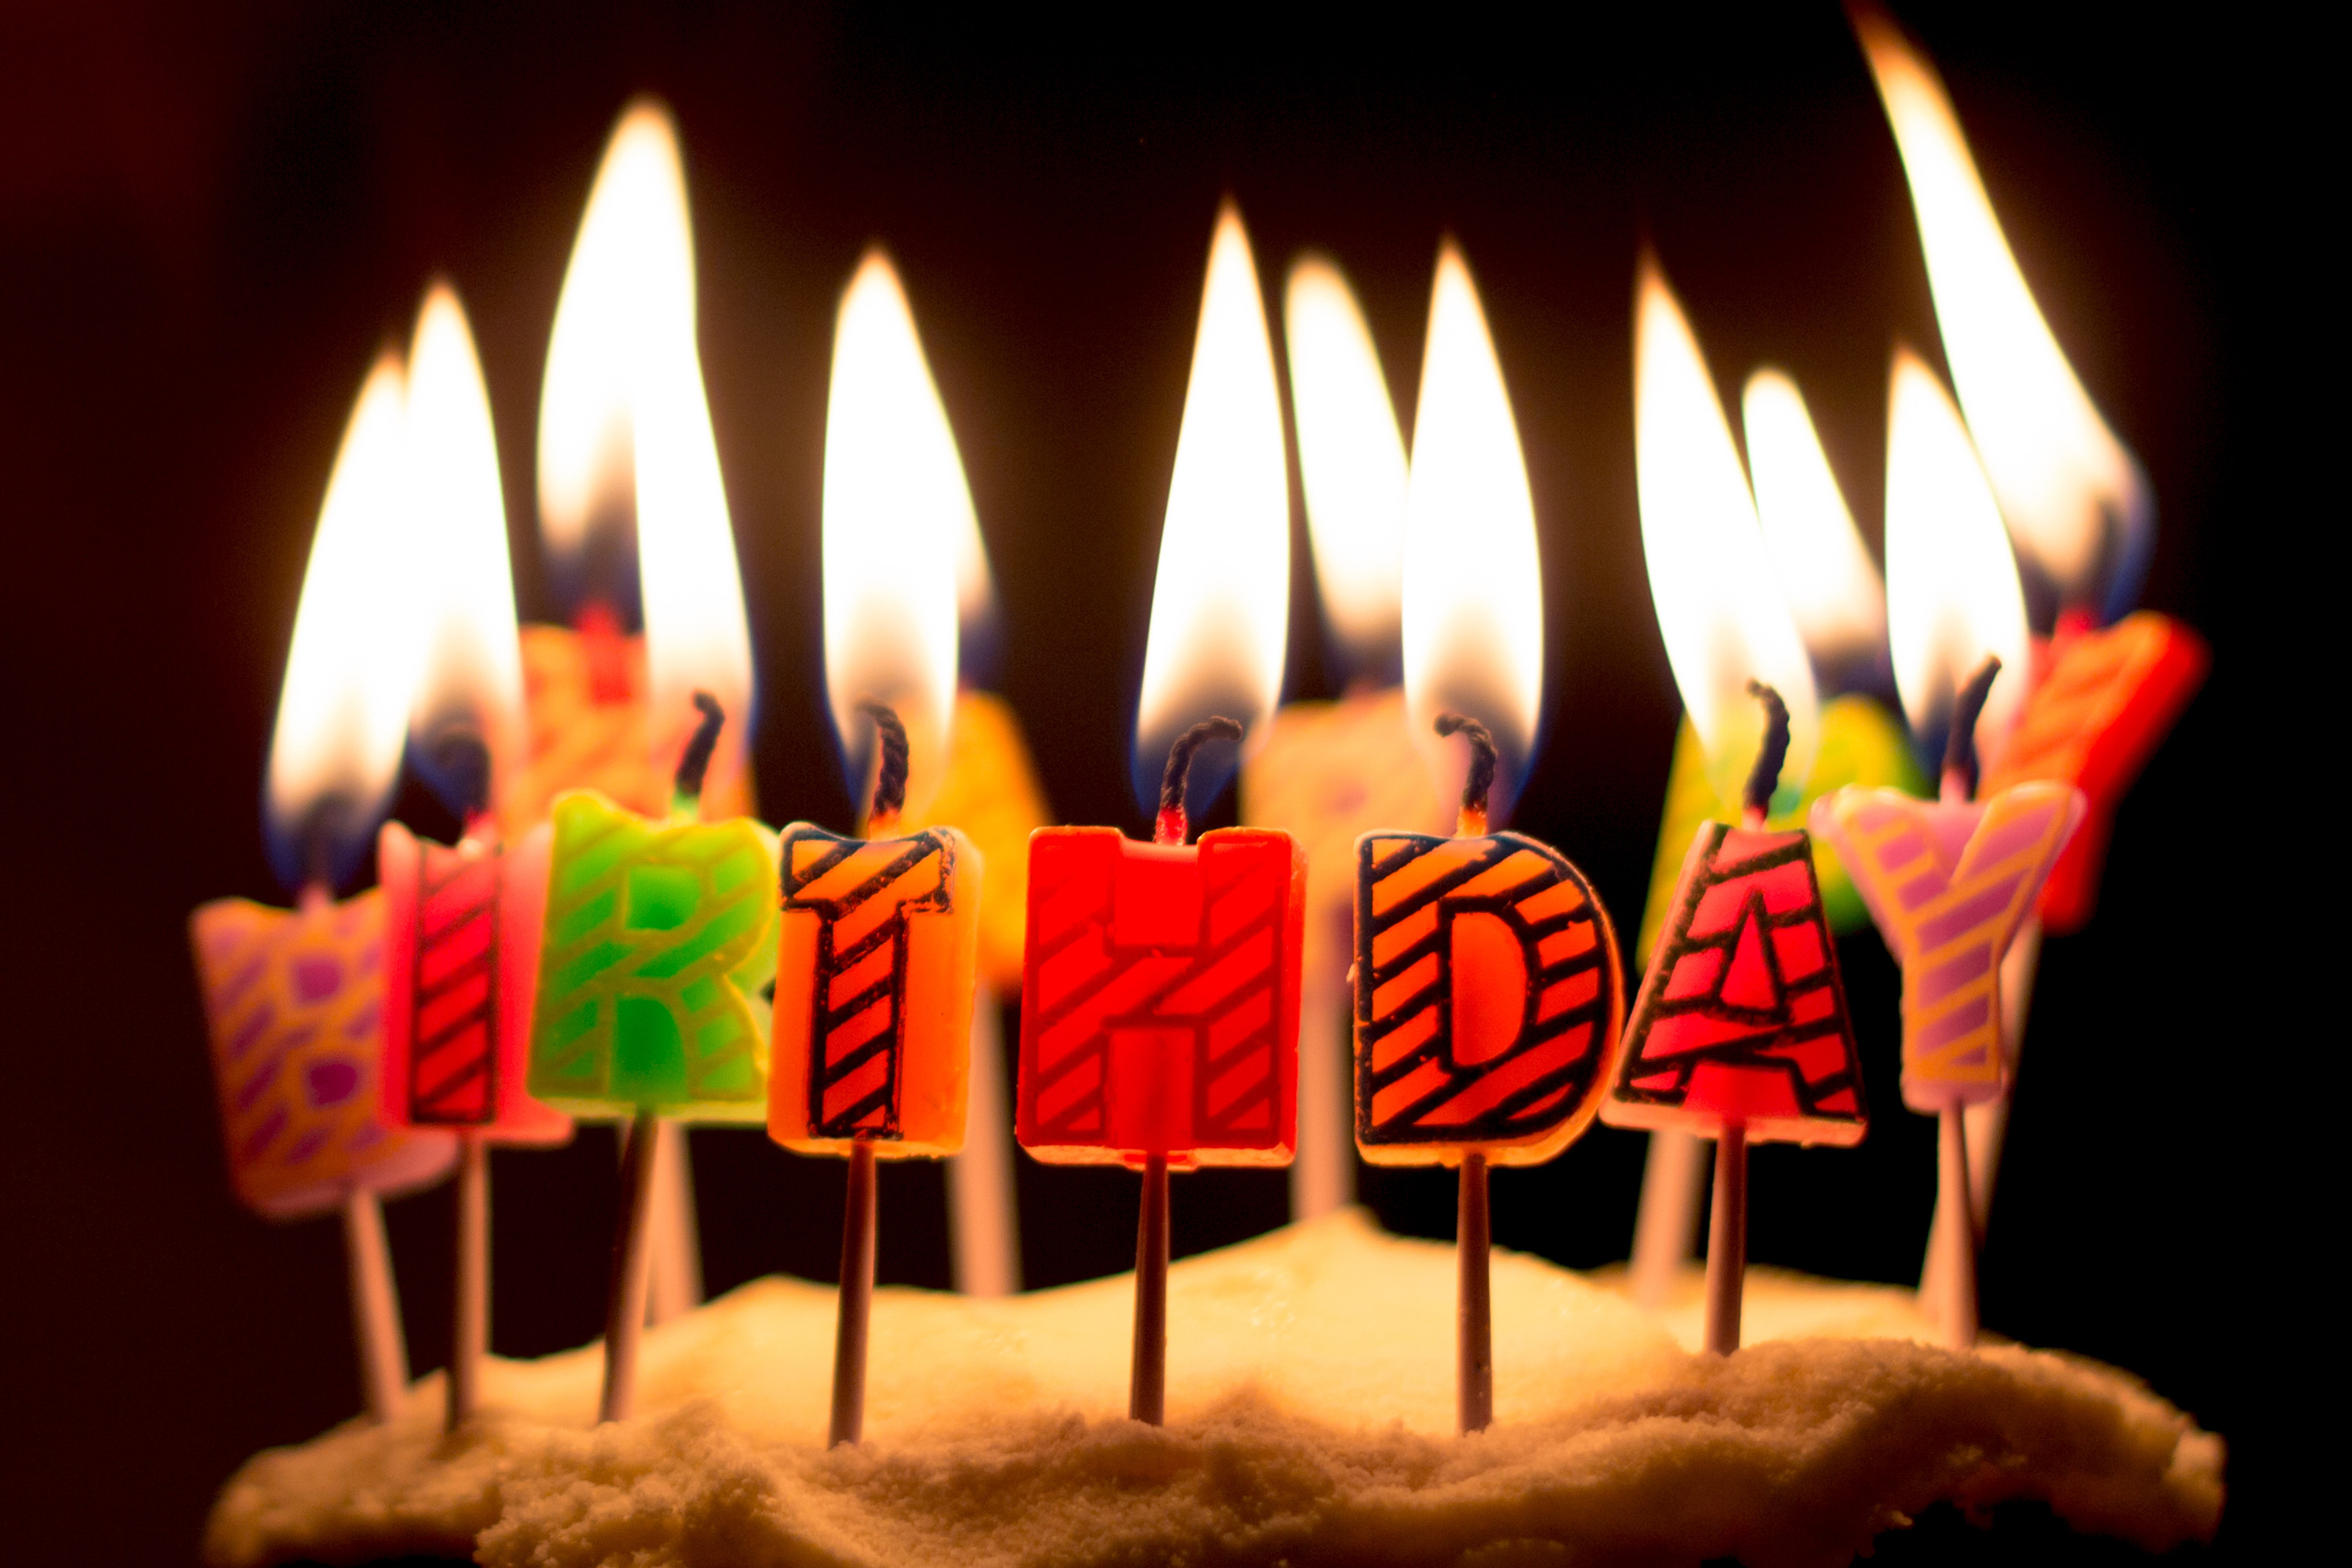 Birthday Cake Picture Free Download Birthday Cake Candles Free Photo Iso Republic